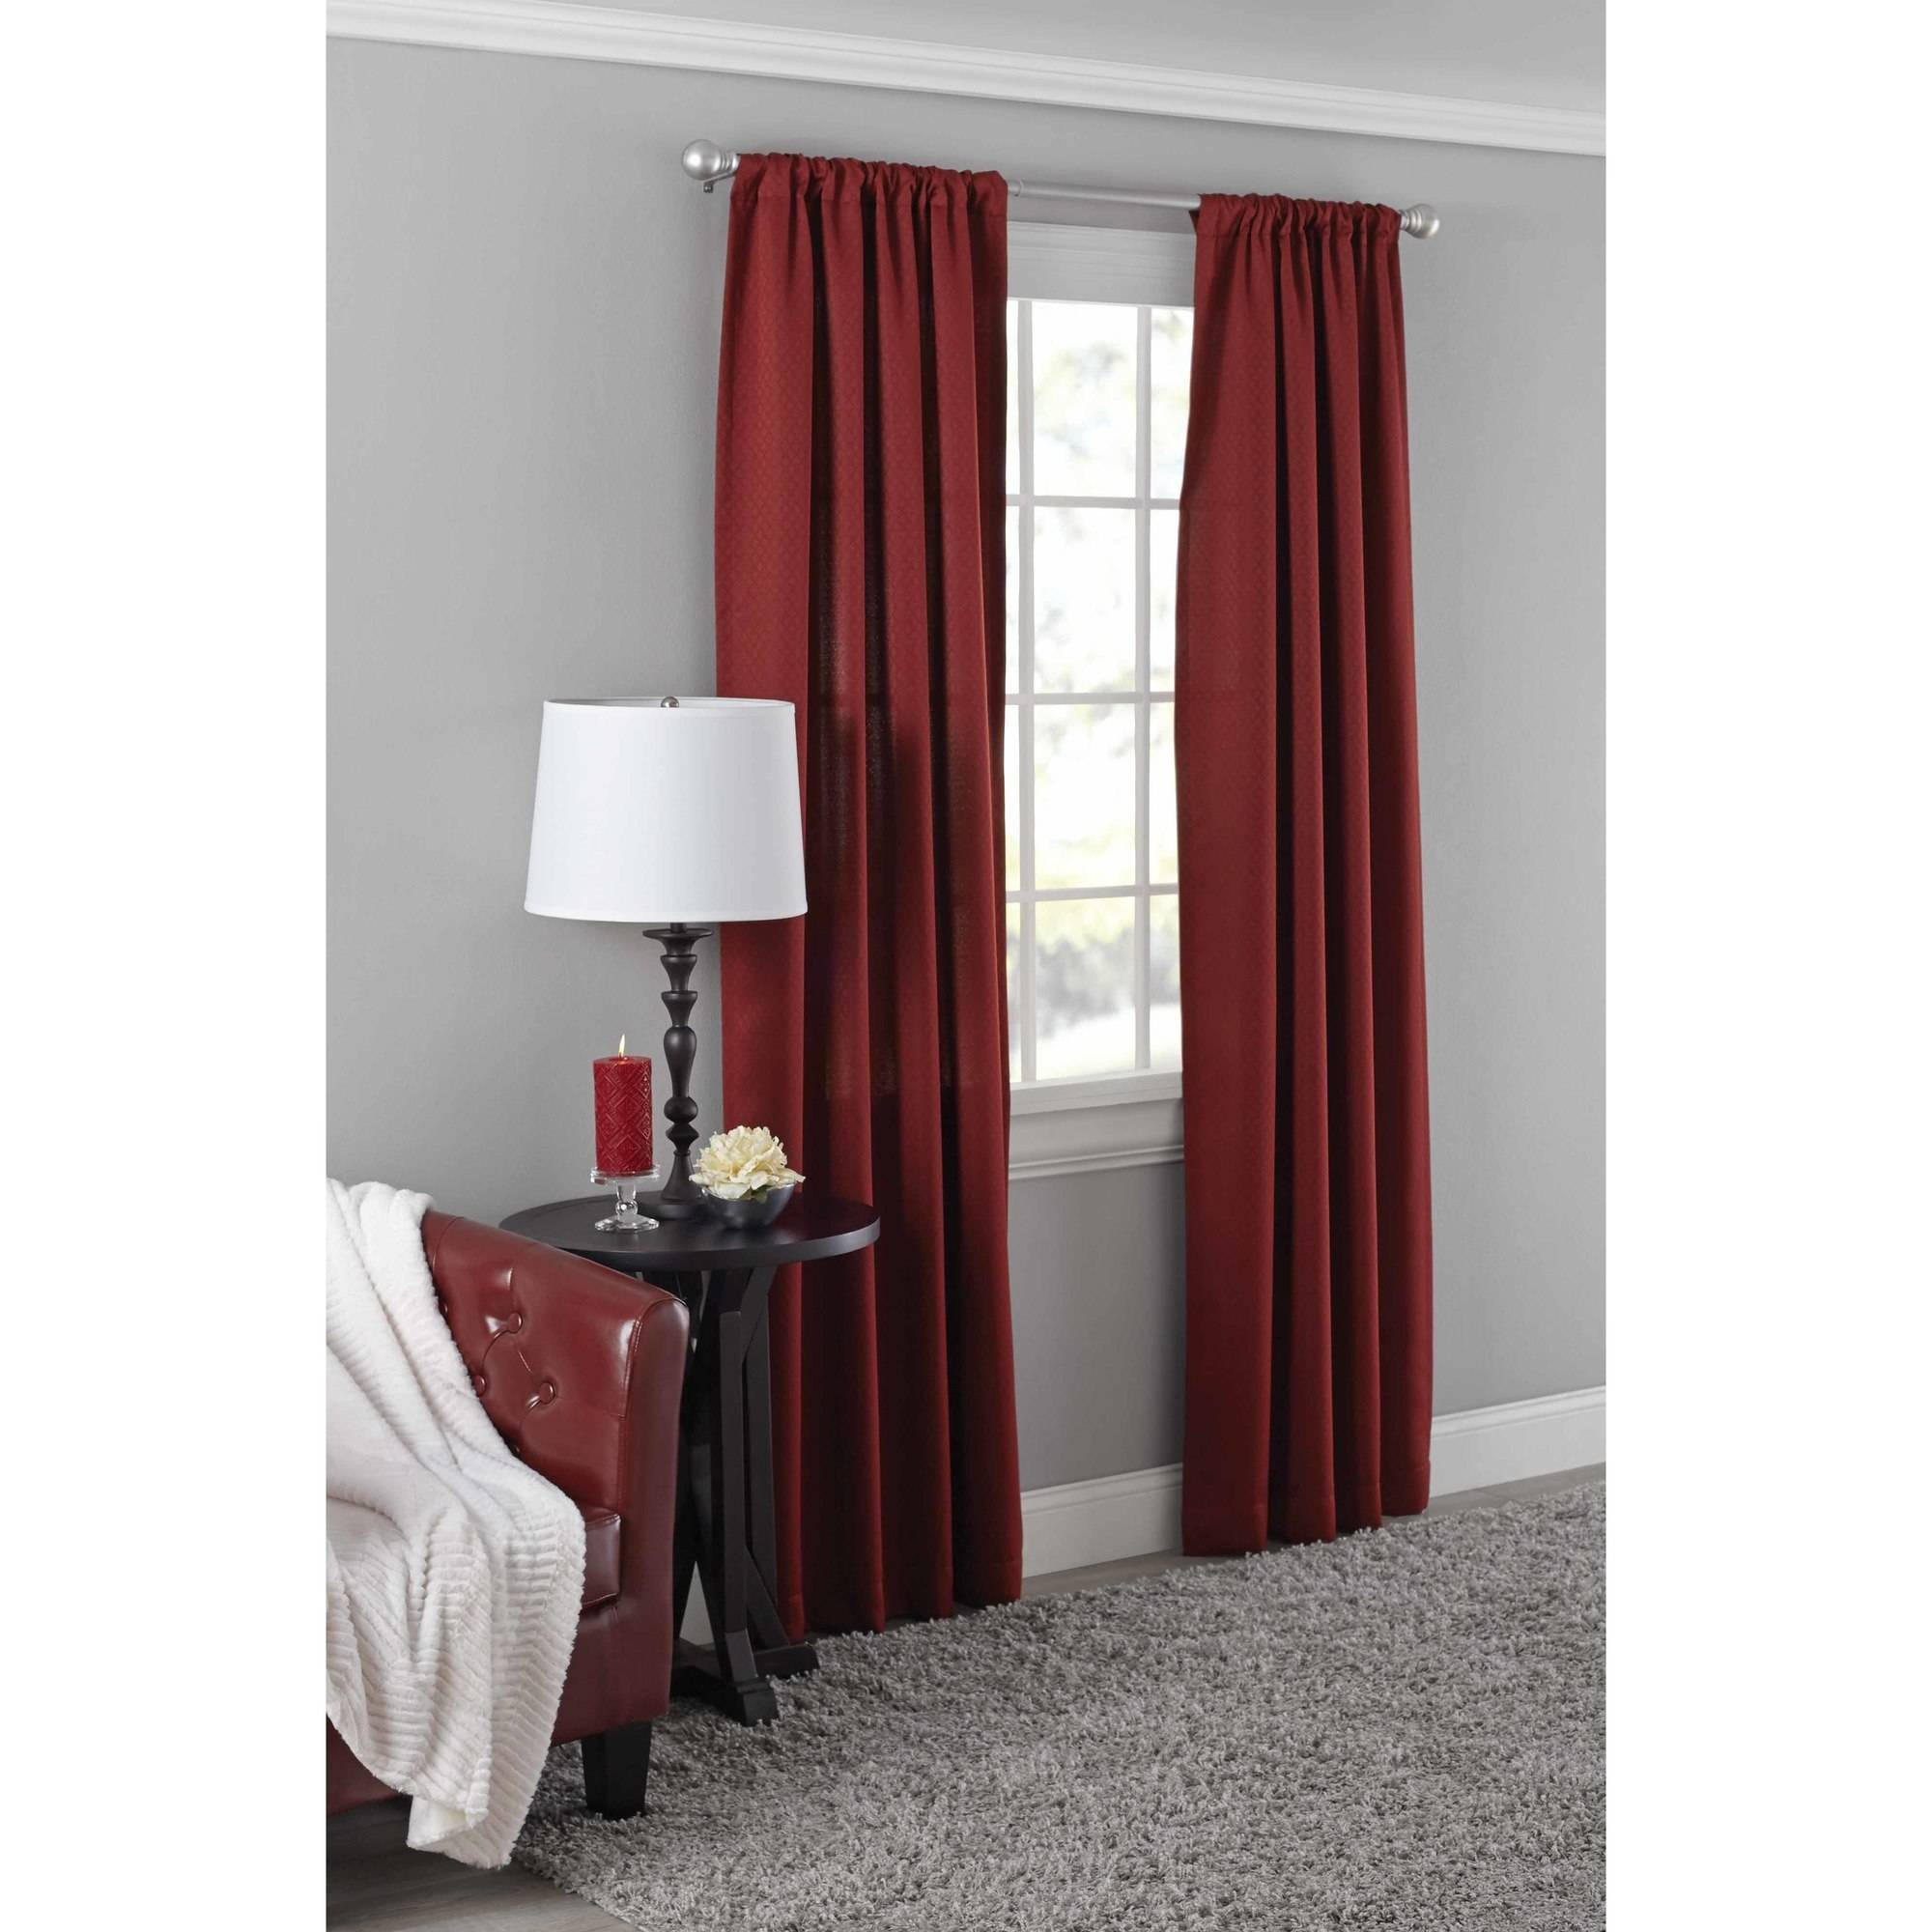 36 Inch Room Darkening Curtains Mainstays Diamond Room Darkening Curtain Panel In Multiple Sizes And Colors